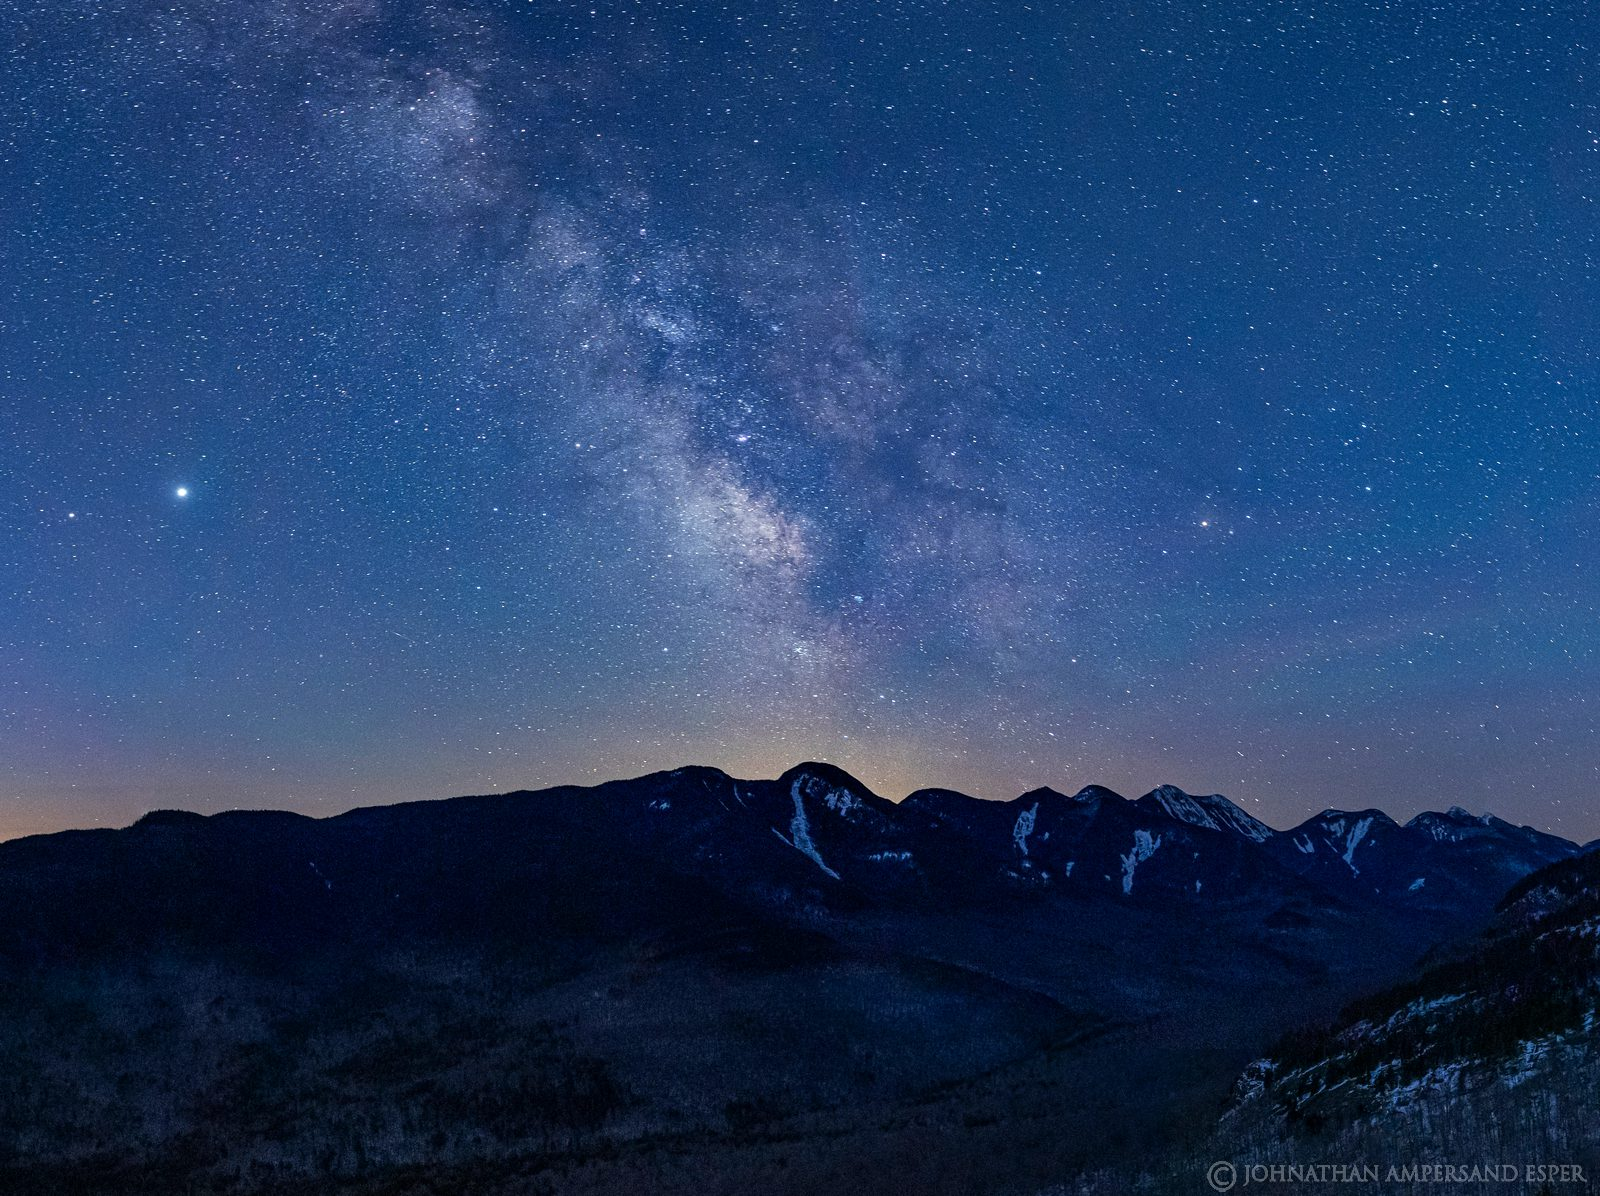 Milky Way,The Brothers,Big Slide Mt,night,stars,Great Range,April,2020,Gothics Mt,Lower Wolf Jaw,